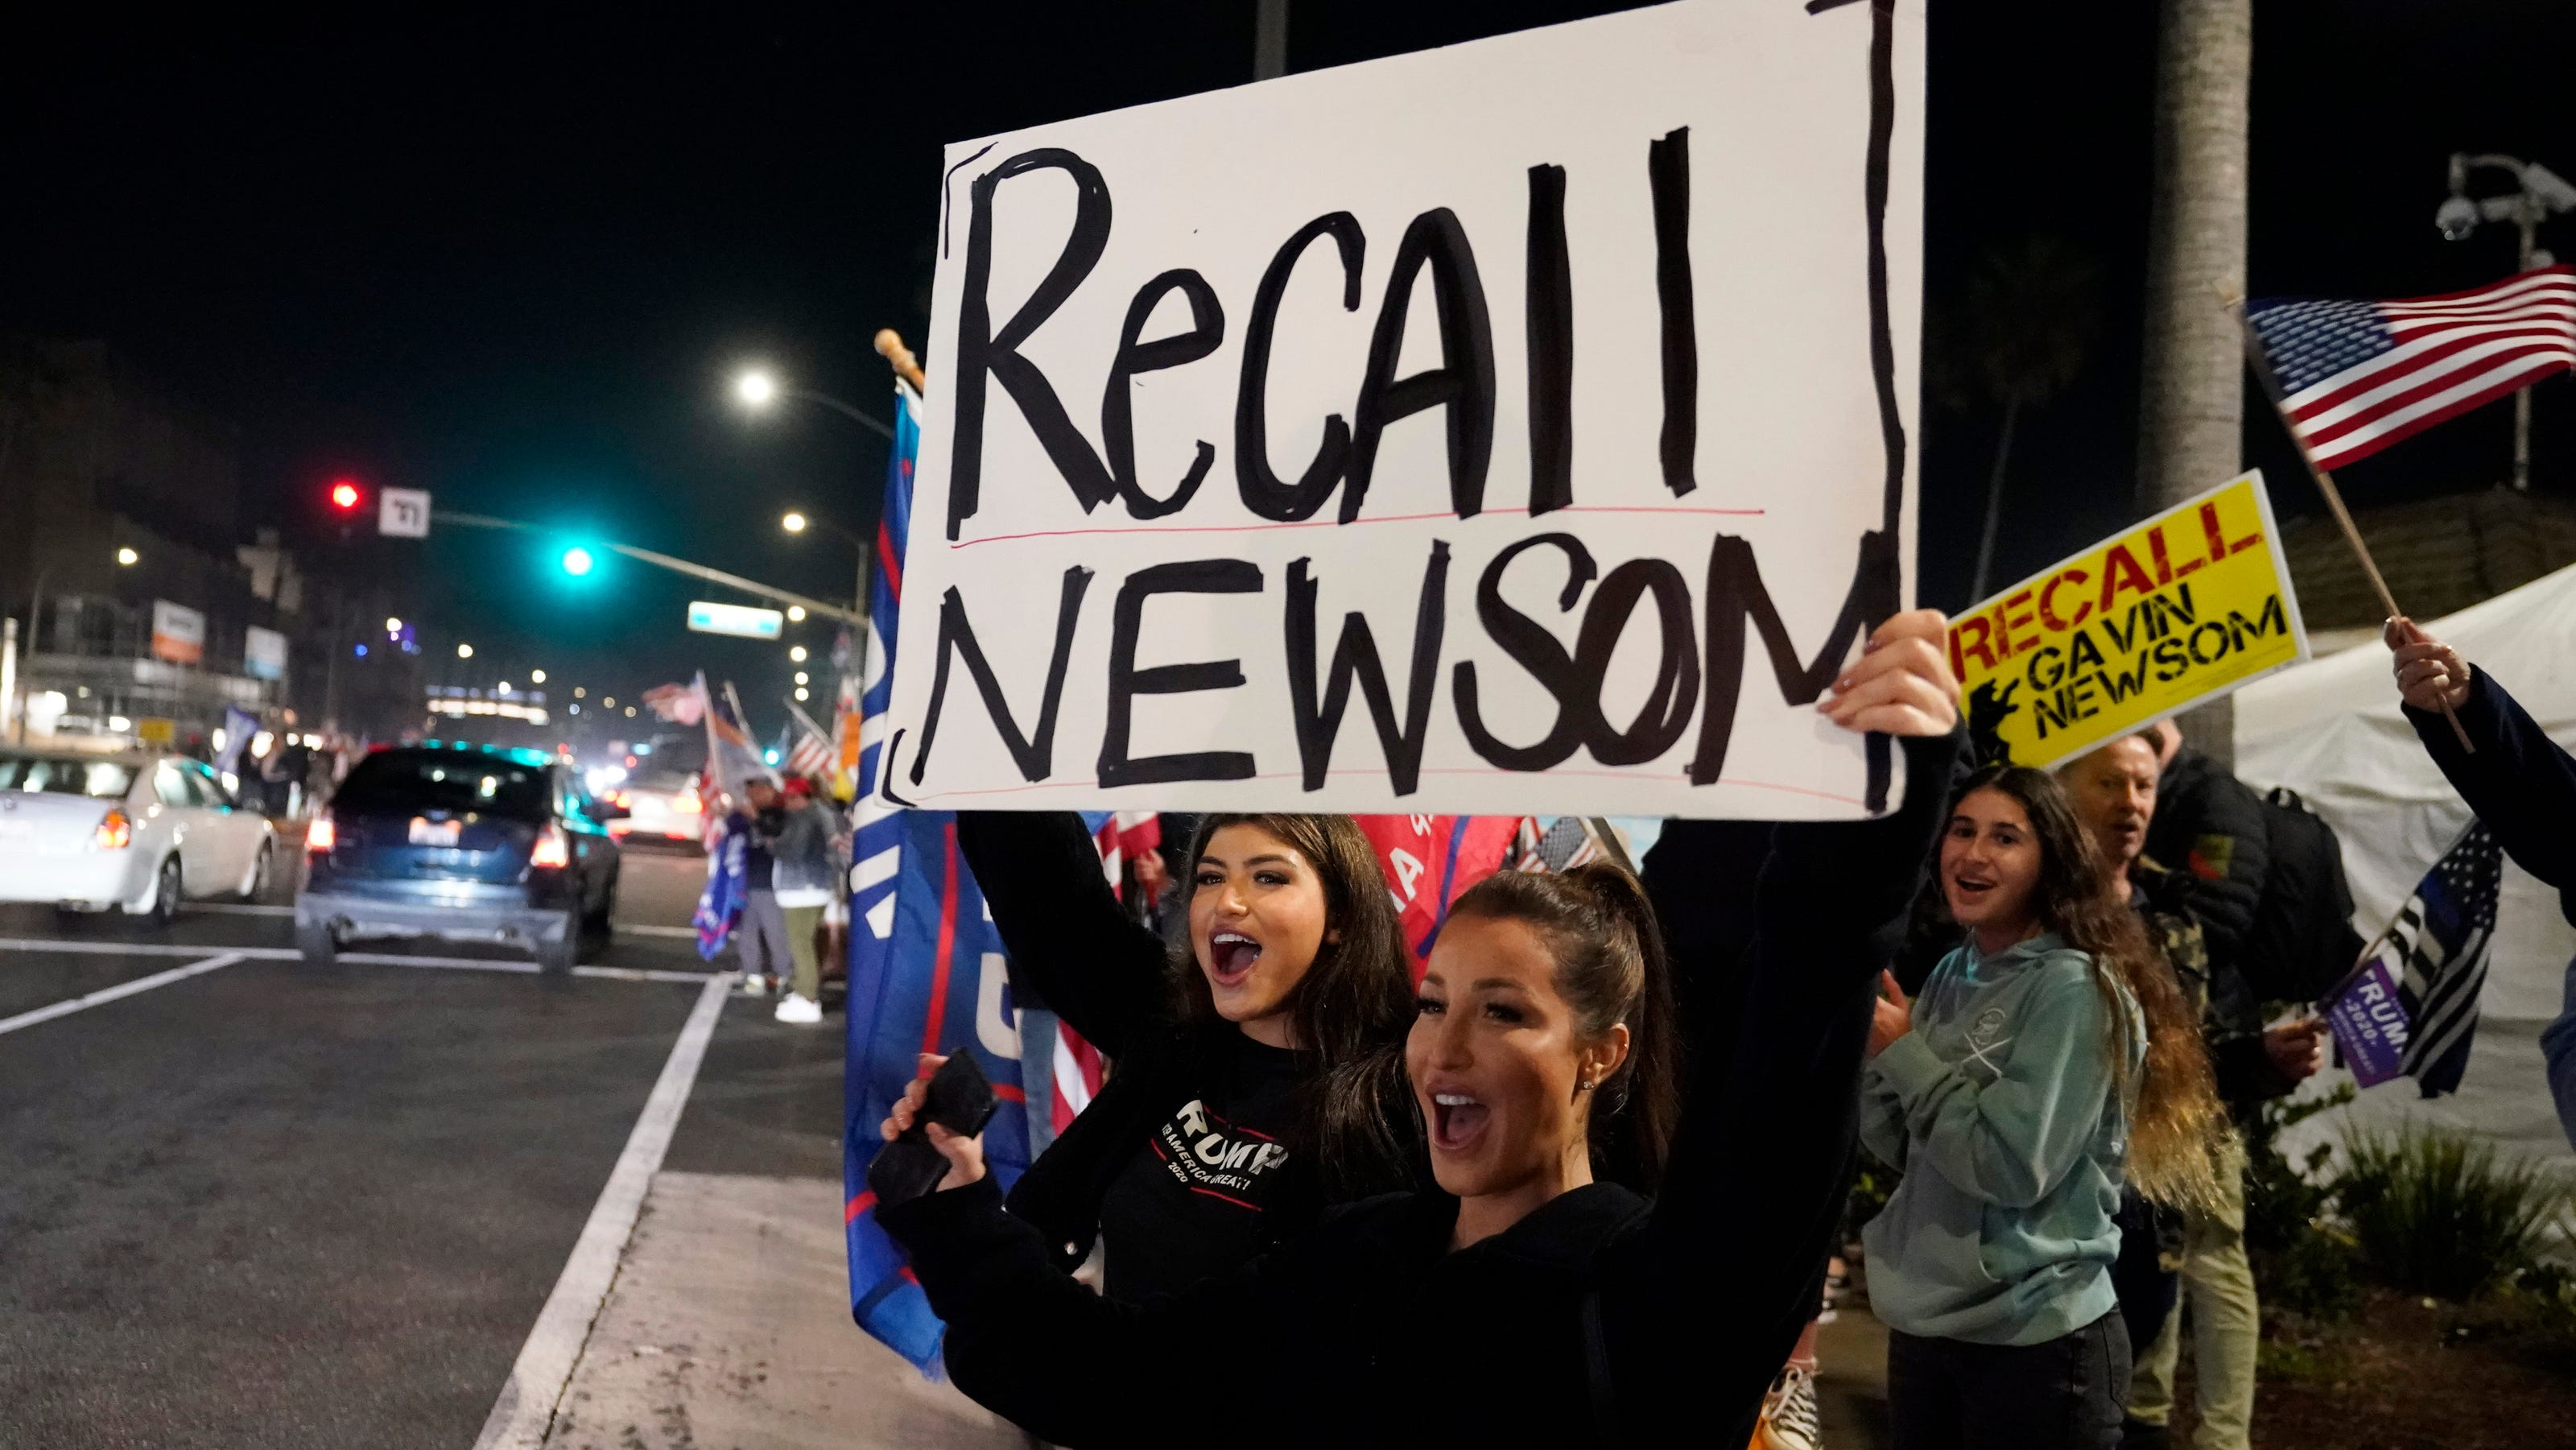 How California's recall election rules could spell trouble for Gavin Newsom